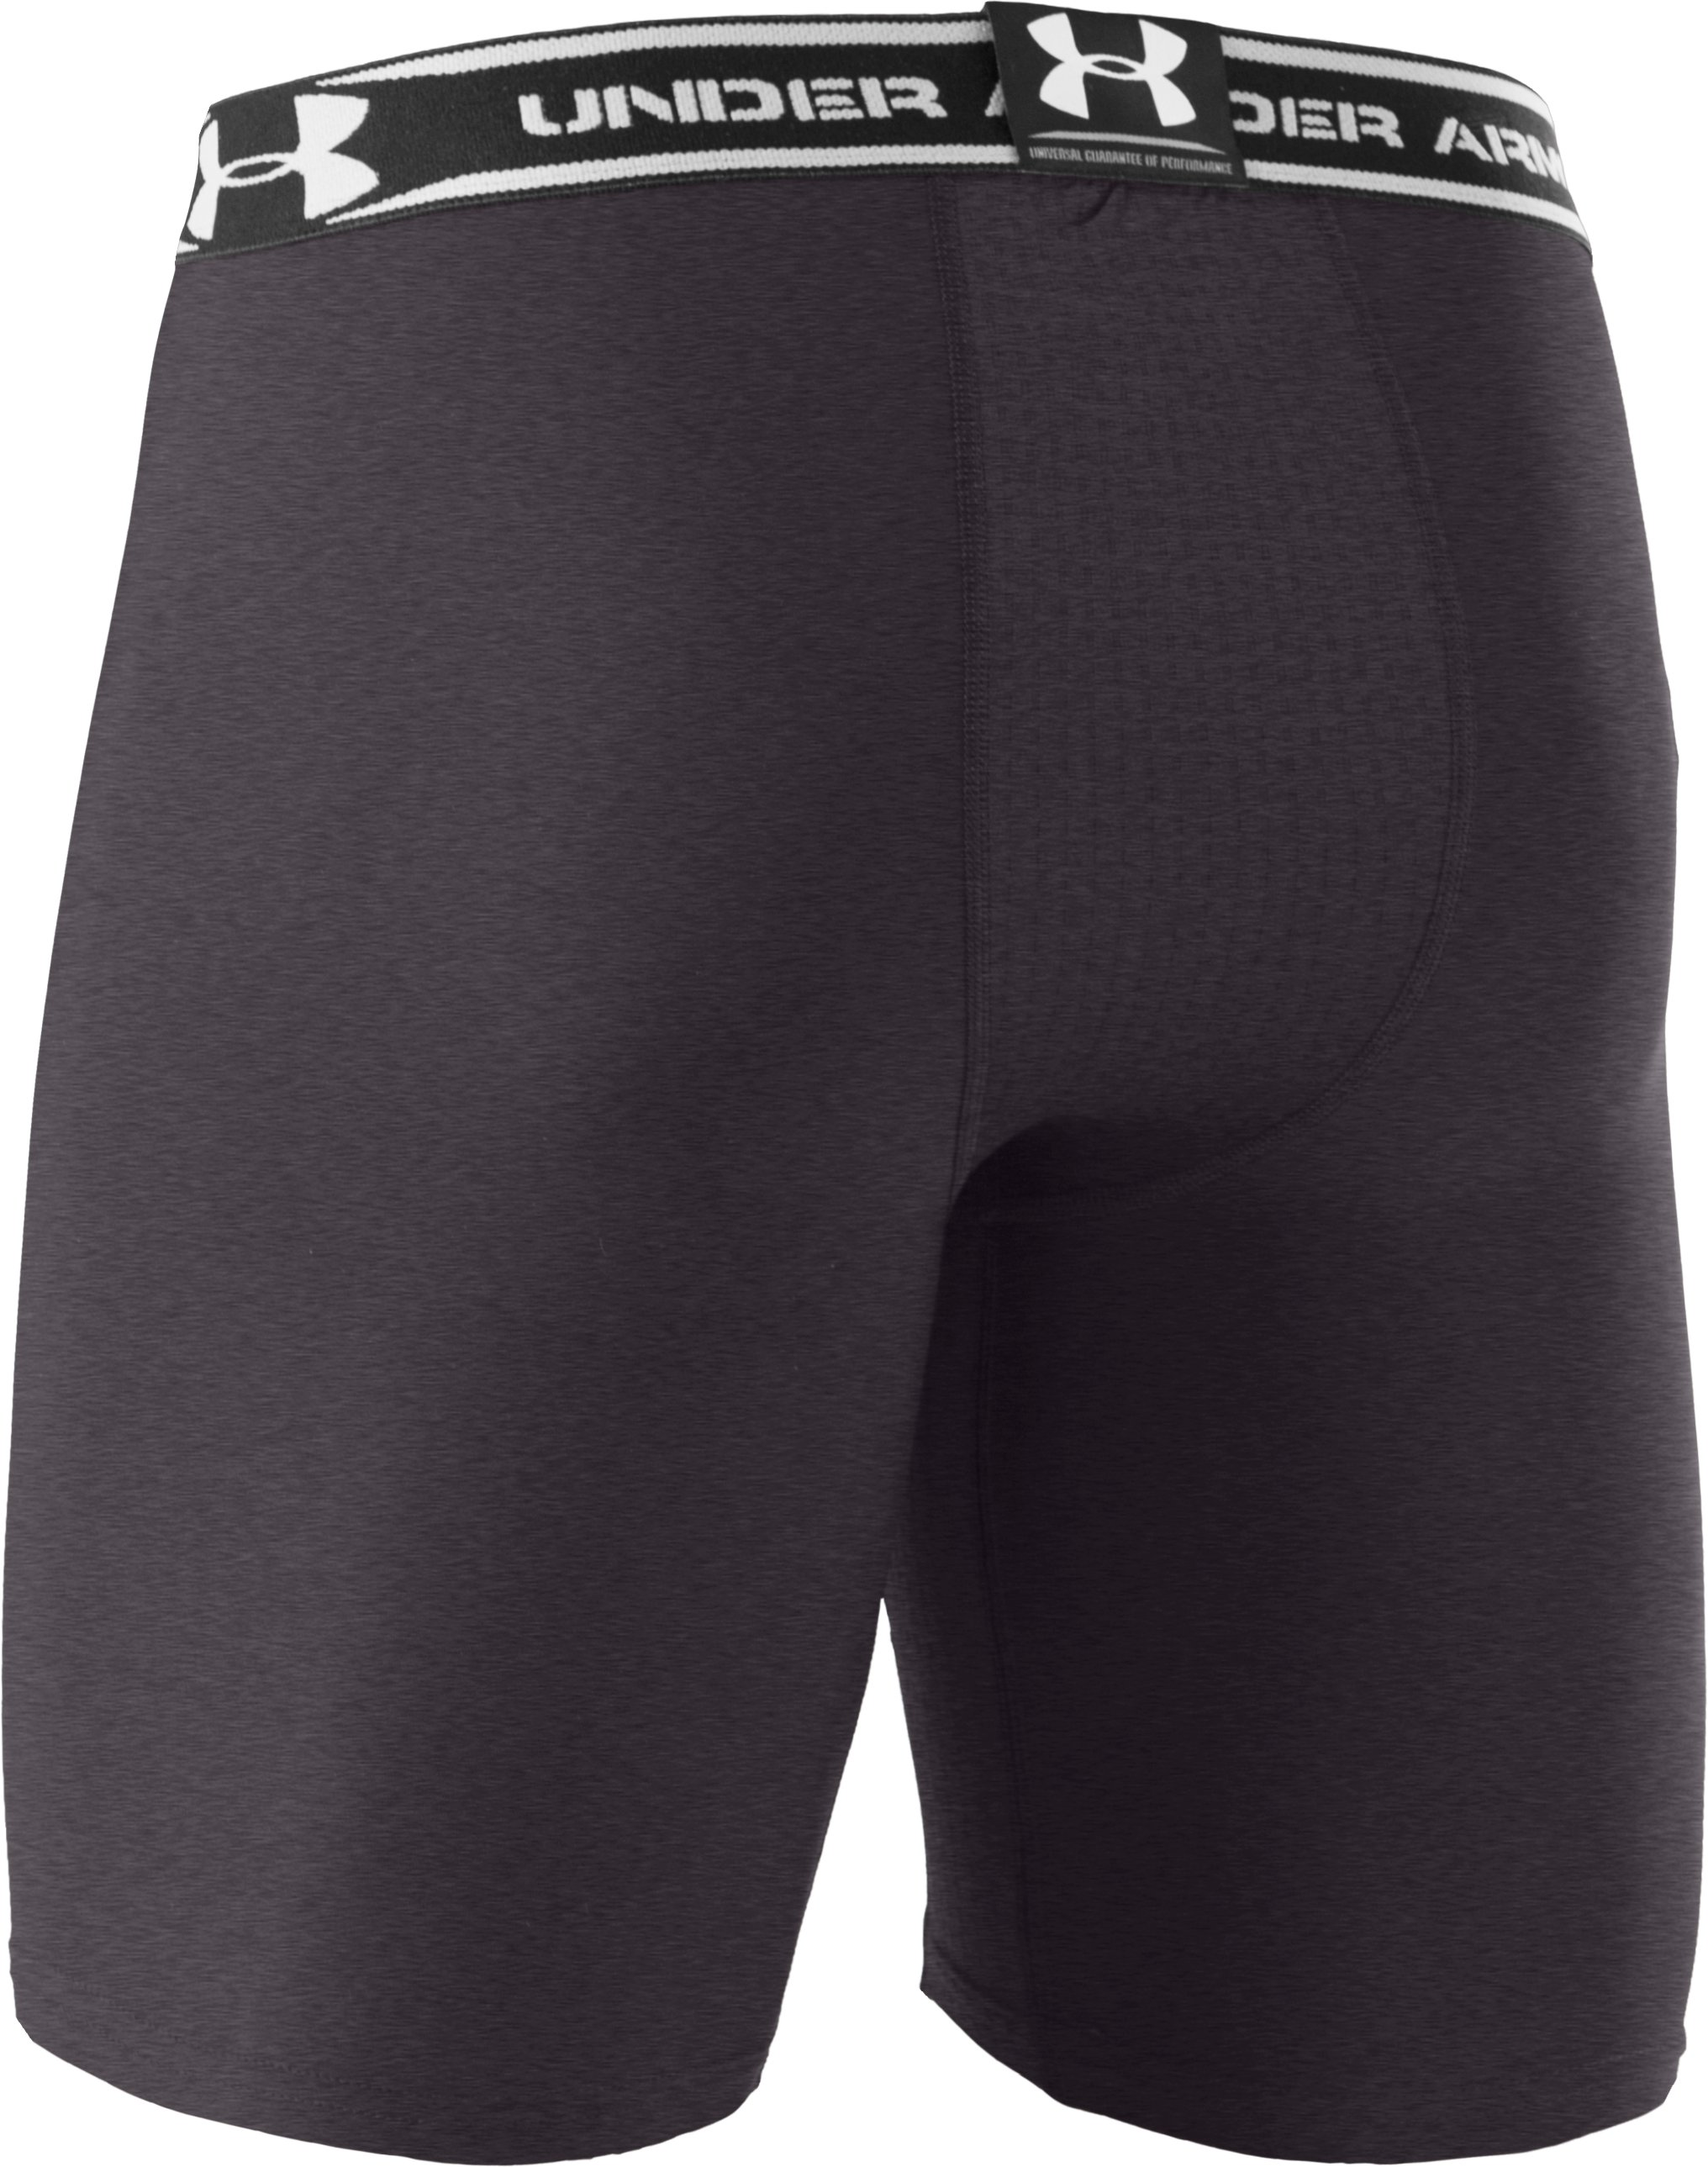 "Men's HeatGear® Vented 7"" Compression Shorts, Carbon Heather, undefined"